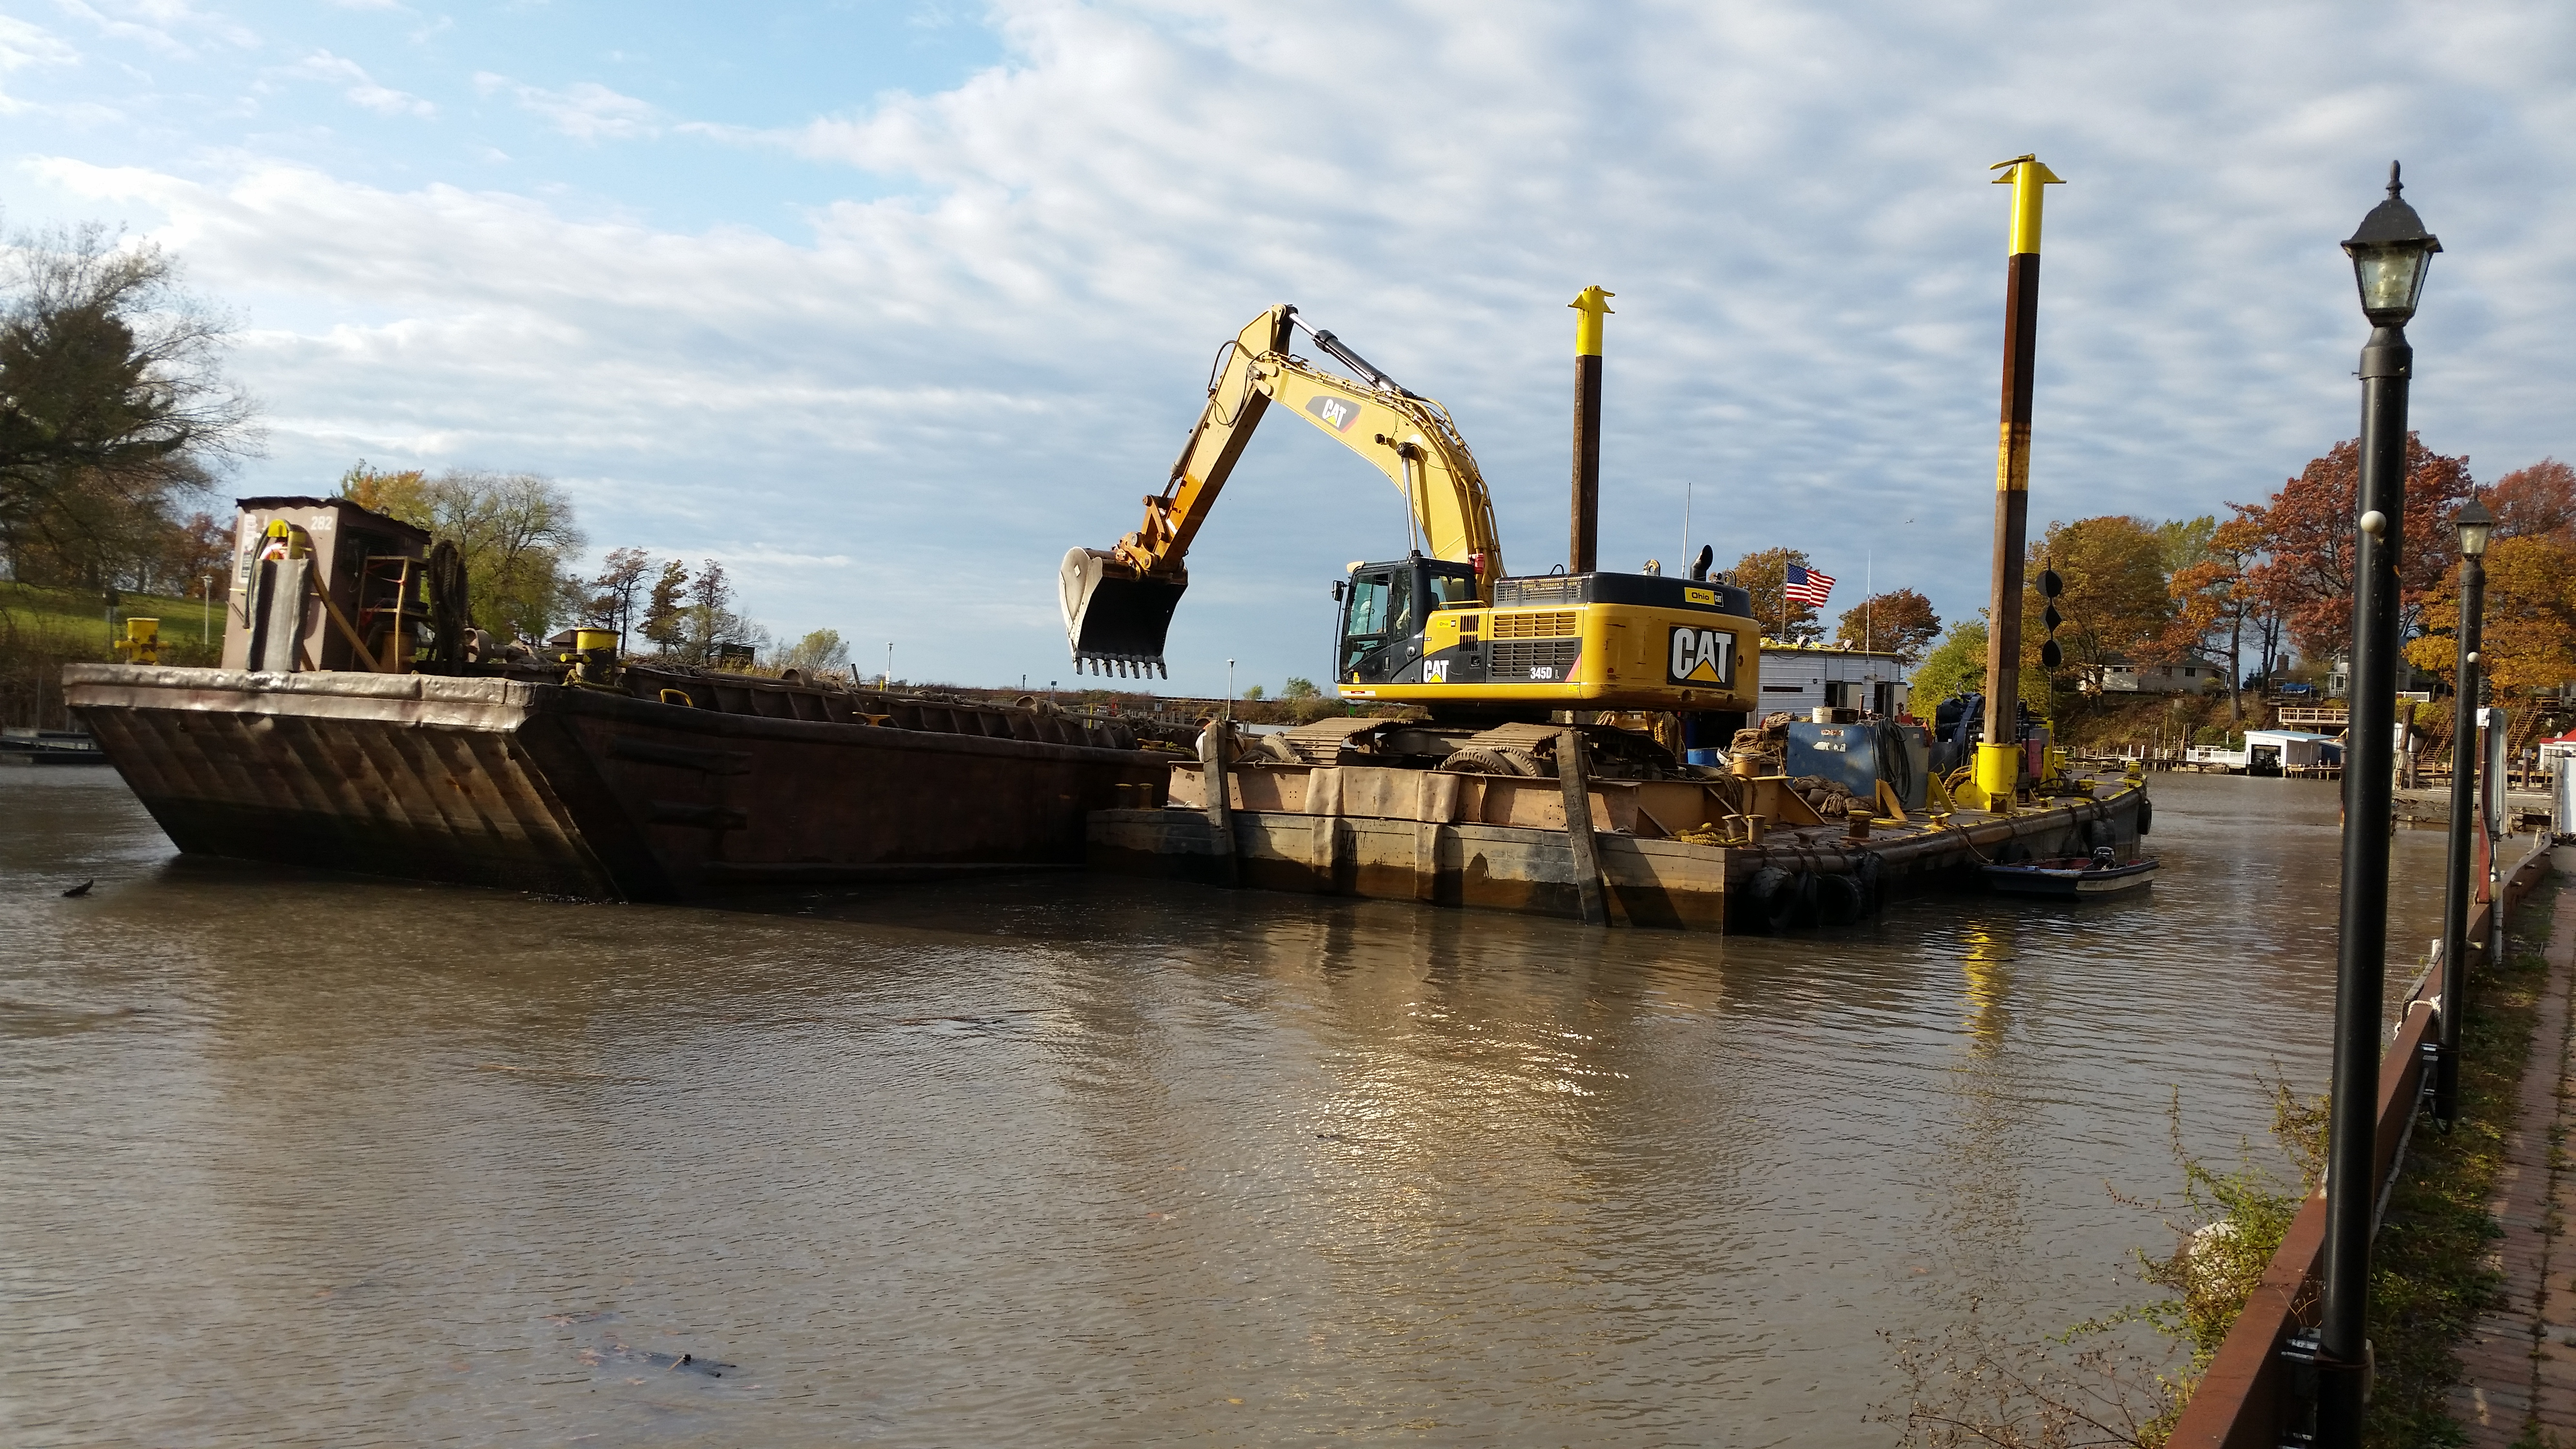 Dredging the Harbor - Bootleggers Cove Renovation Project